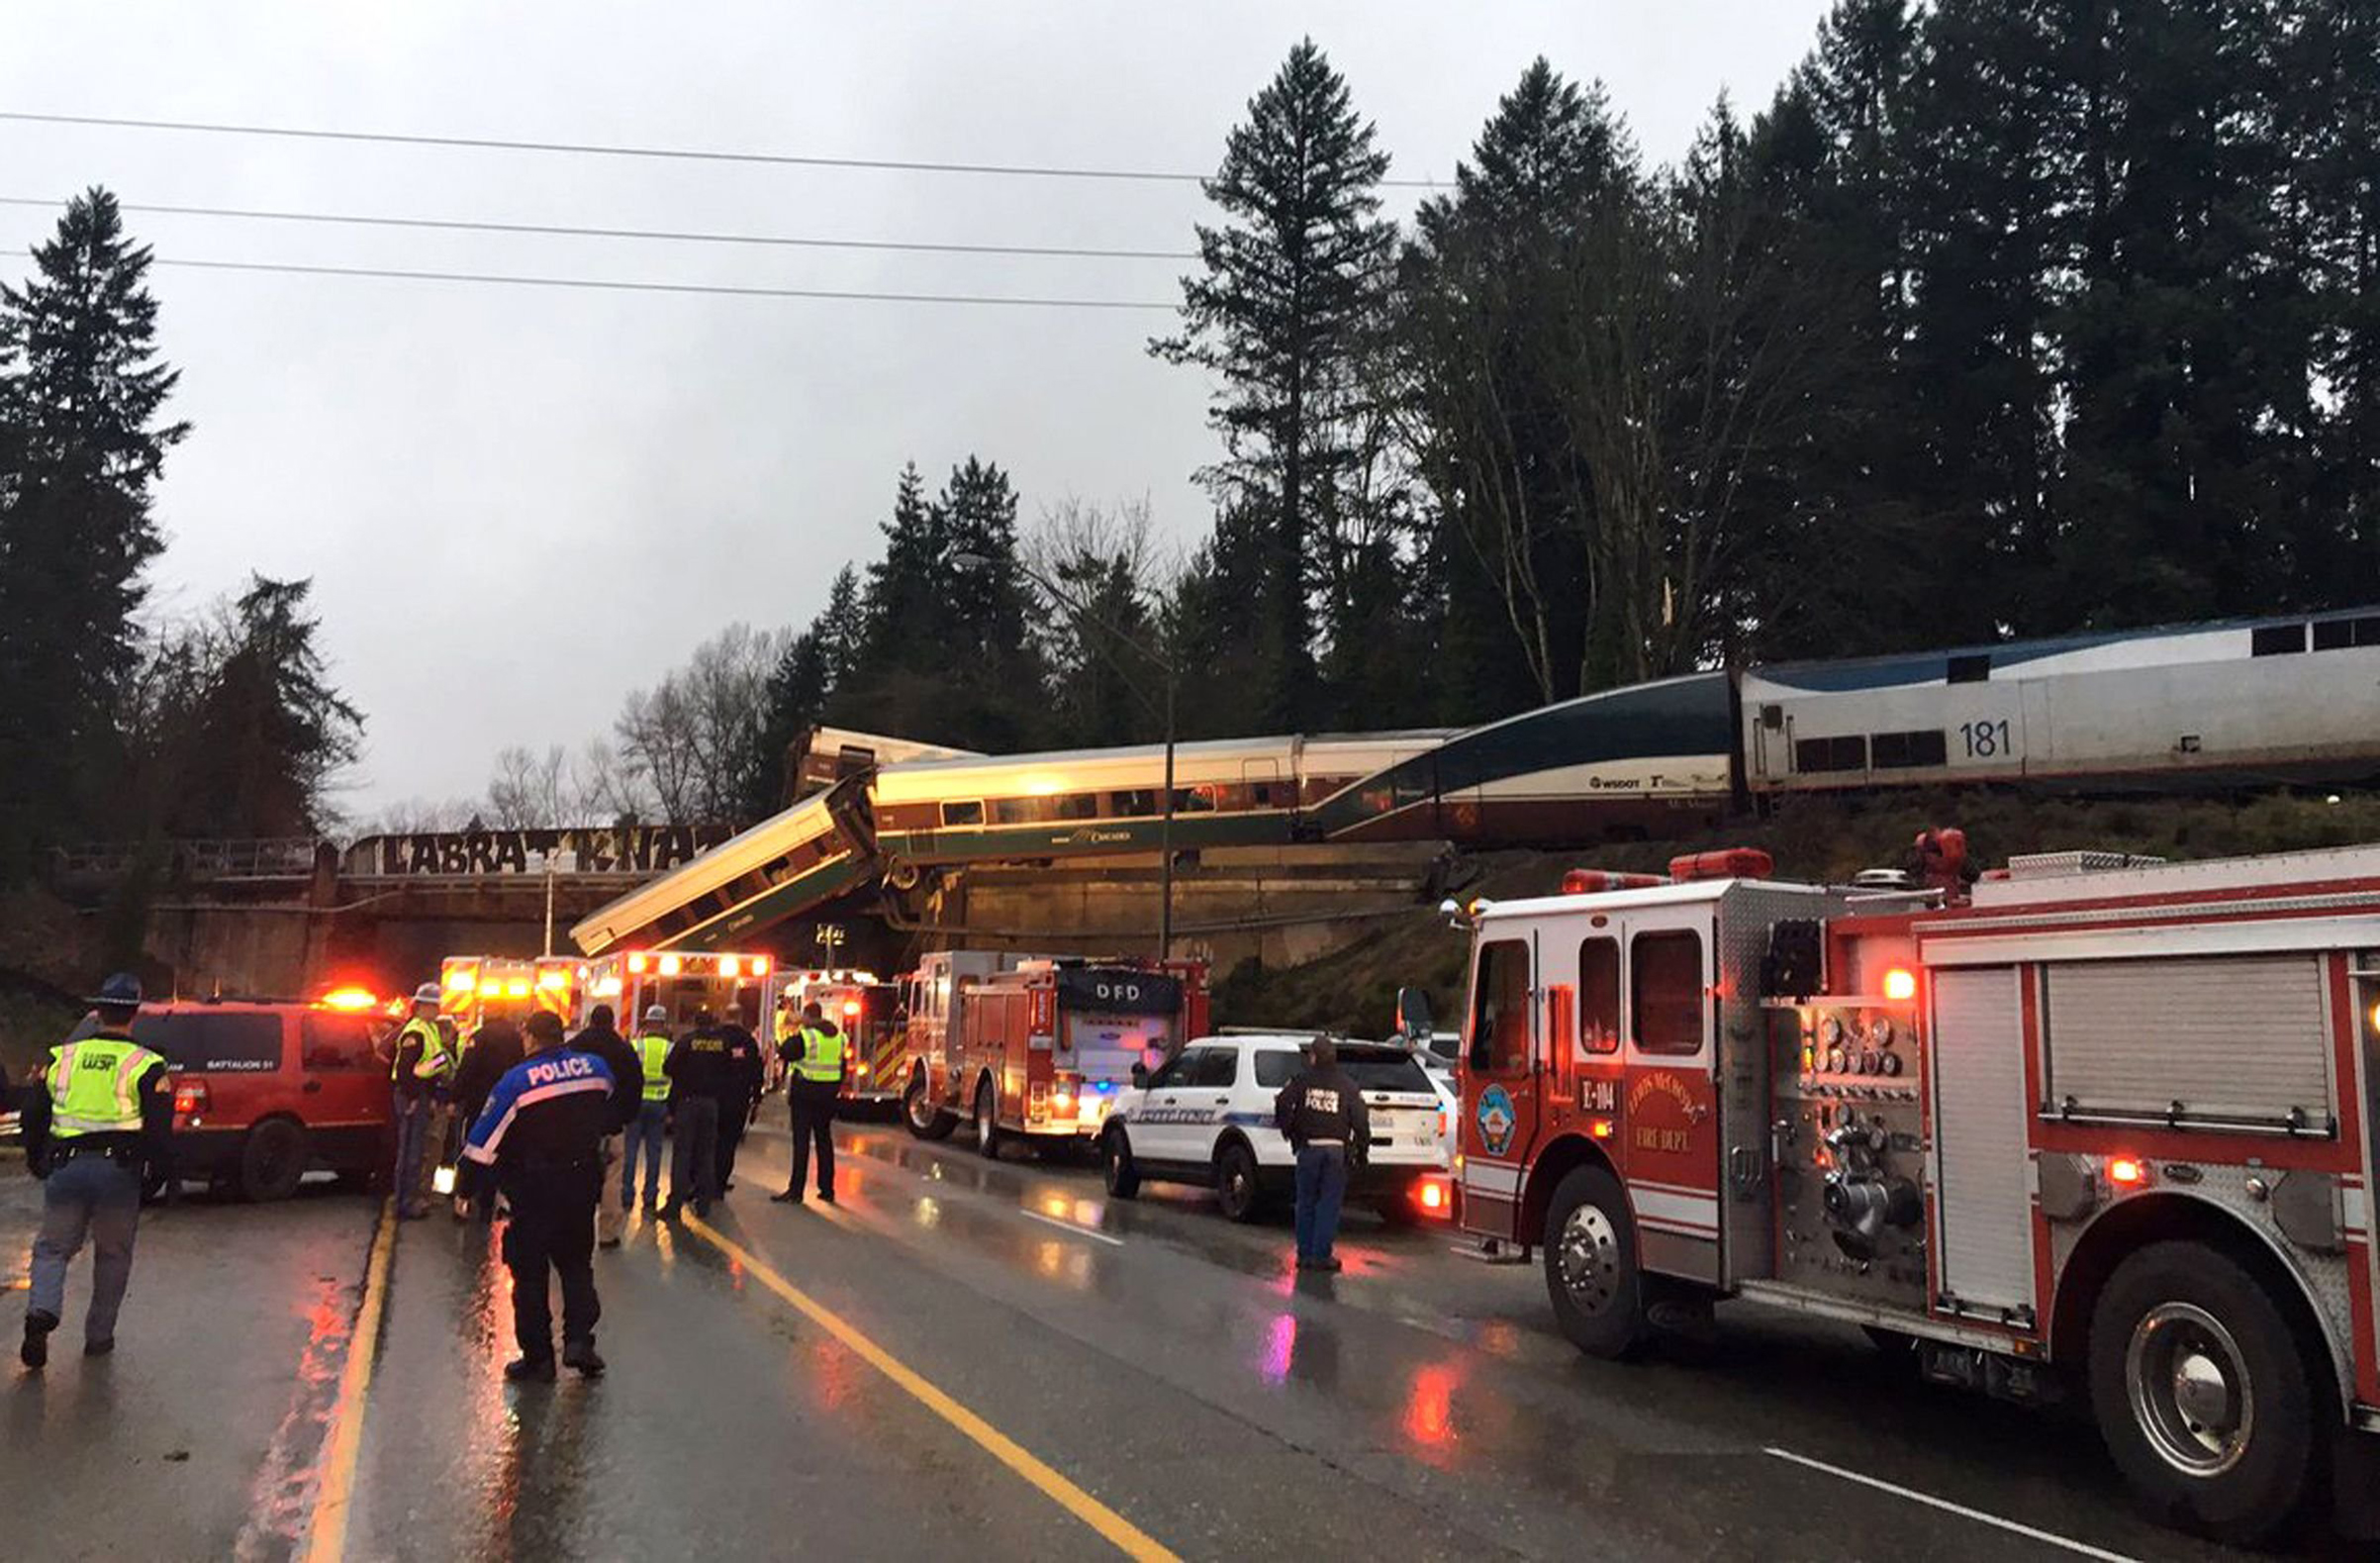 An Amtrak train that was derailed south of Seattle on Dec. 18, 2017. Authorities reported  injuries and casualties.  The train derailed about 40 miles (64 kilometers) south of Seattle before 8 a.m., spilling at least one train car on to busy Interstate 5.